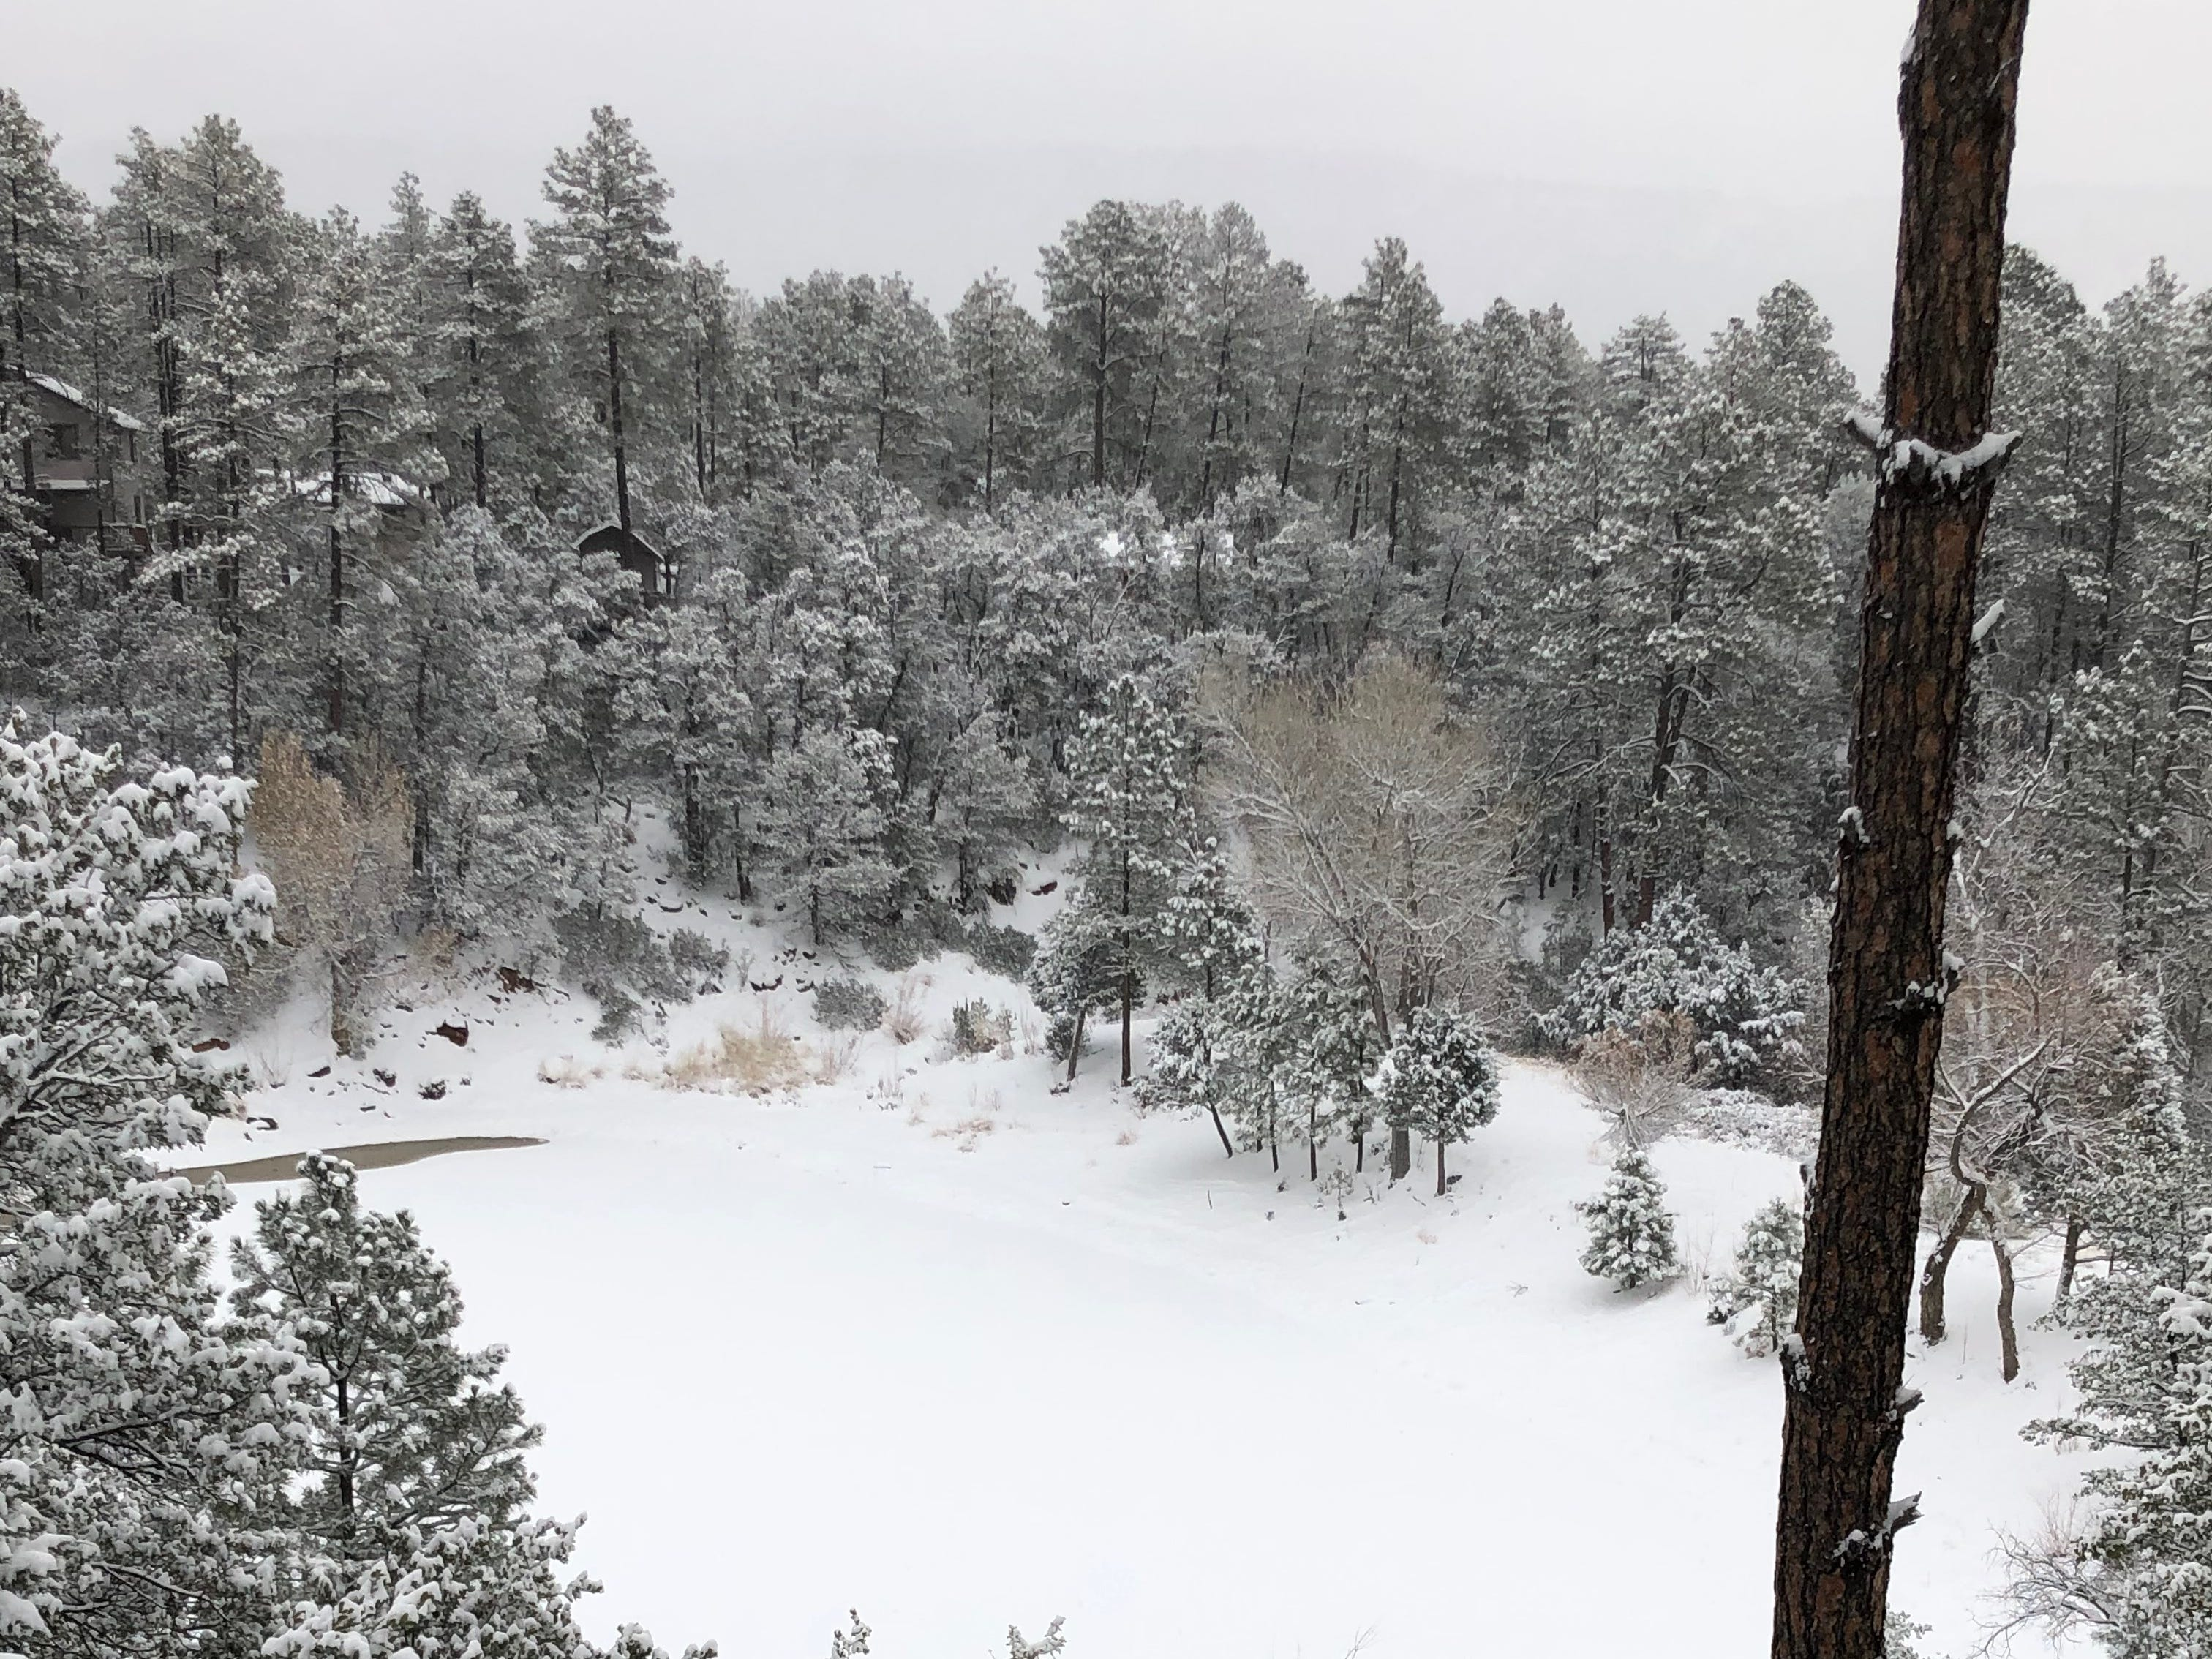 Snowfall blanketed northern Arizona, including Strawberry, on Dec. 31, 2018.